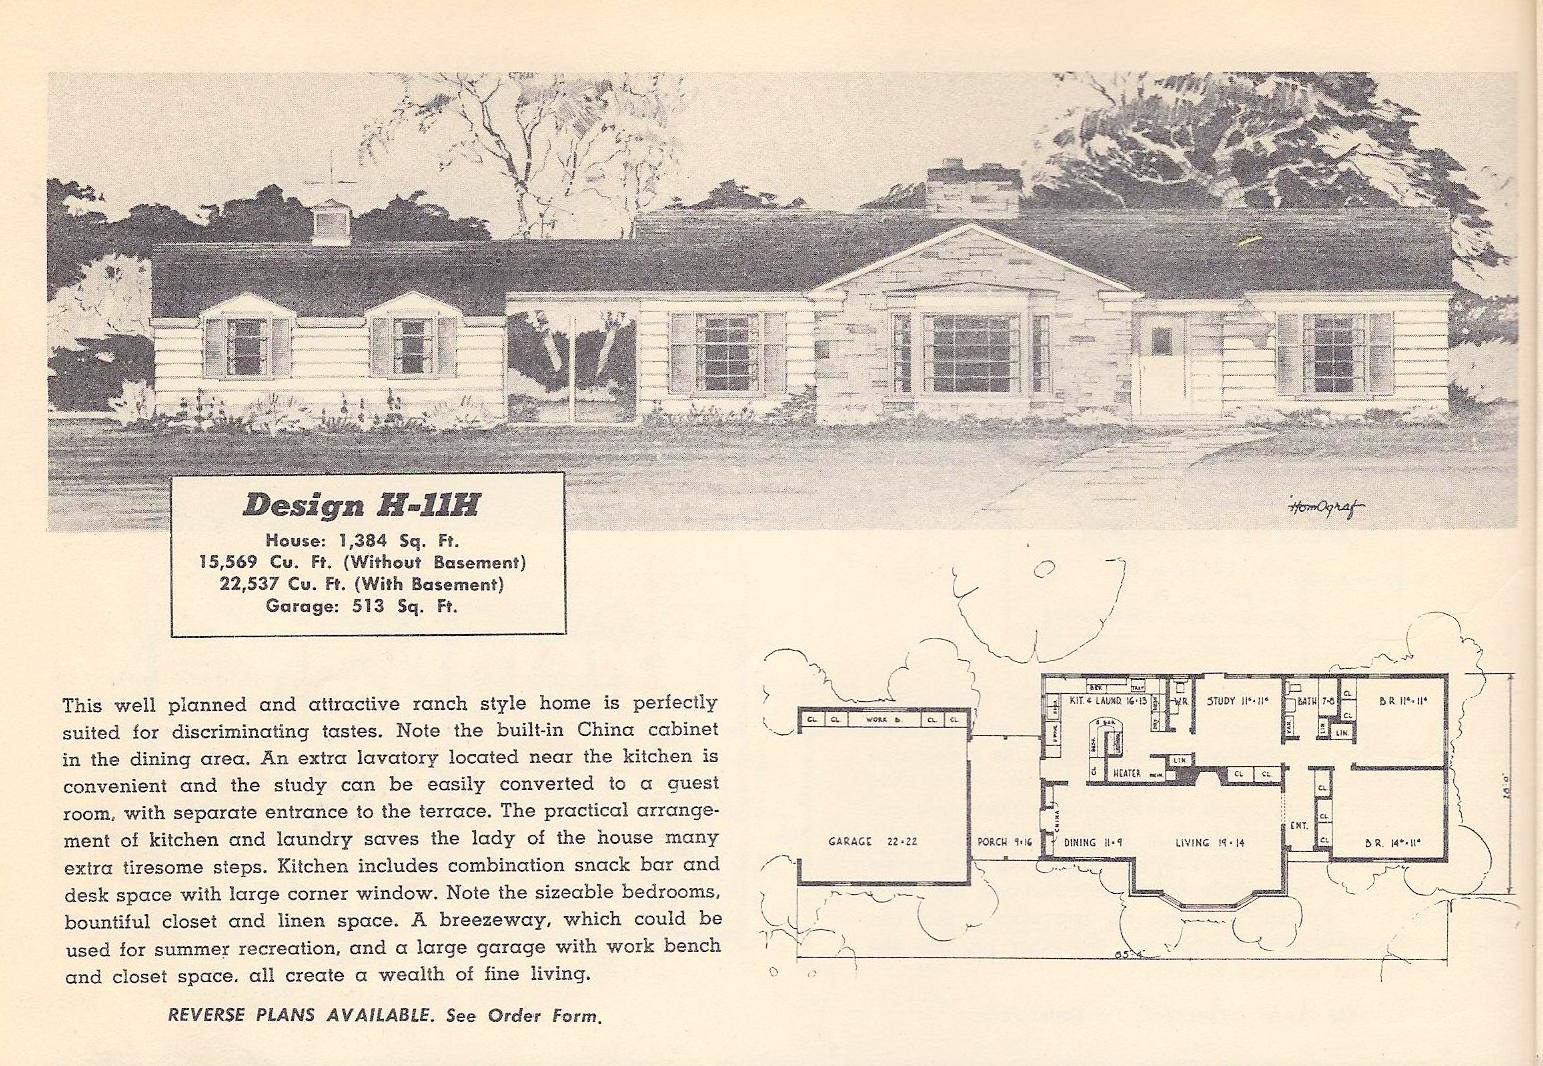 Vintage house plans 11h antique alter ego for Vintage ranch house plans